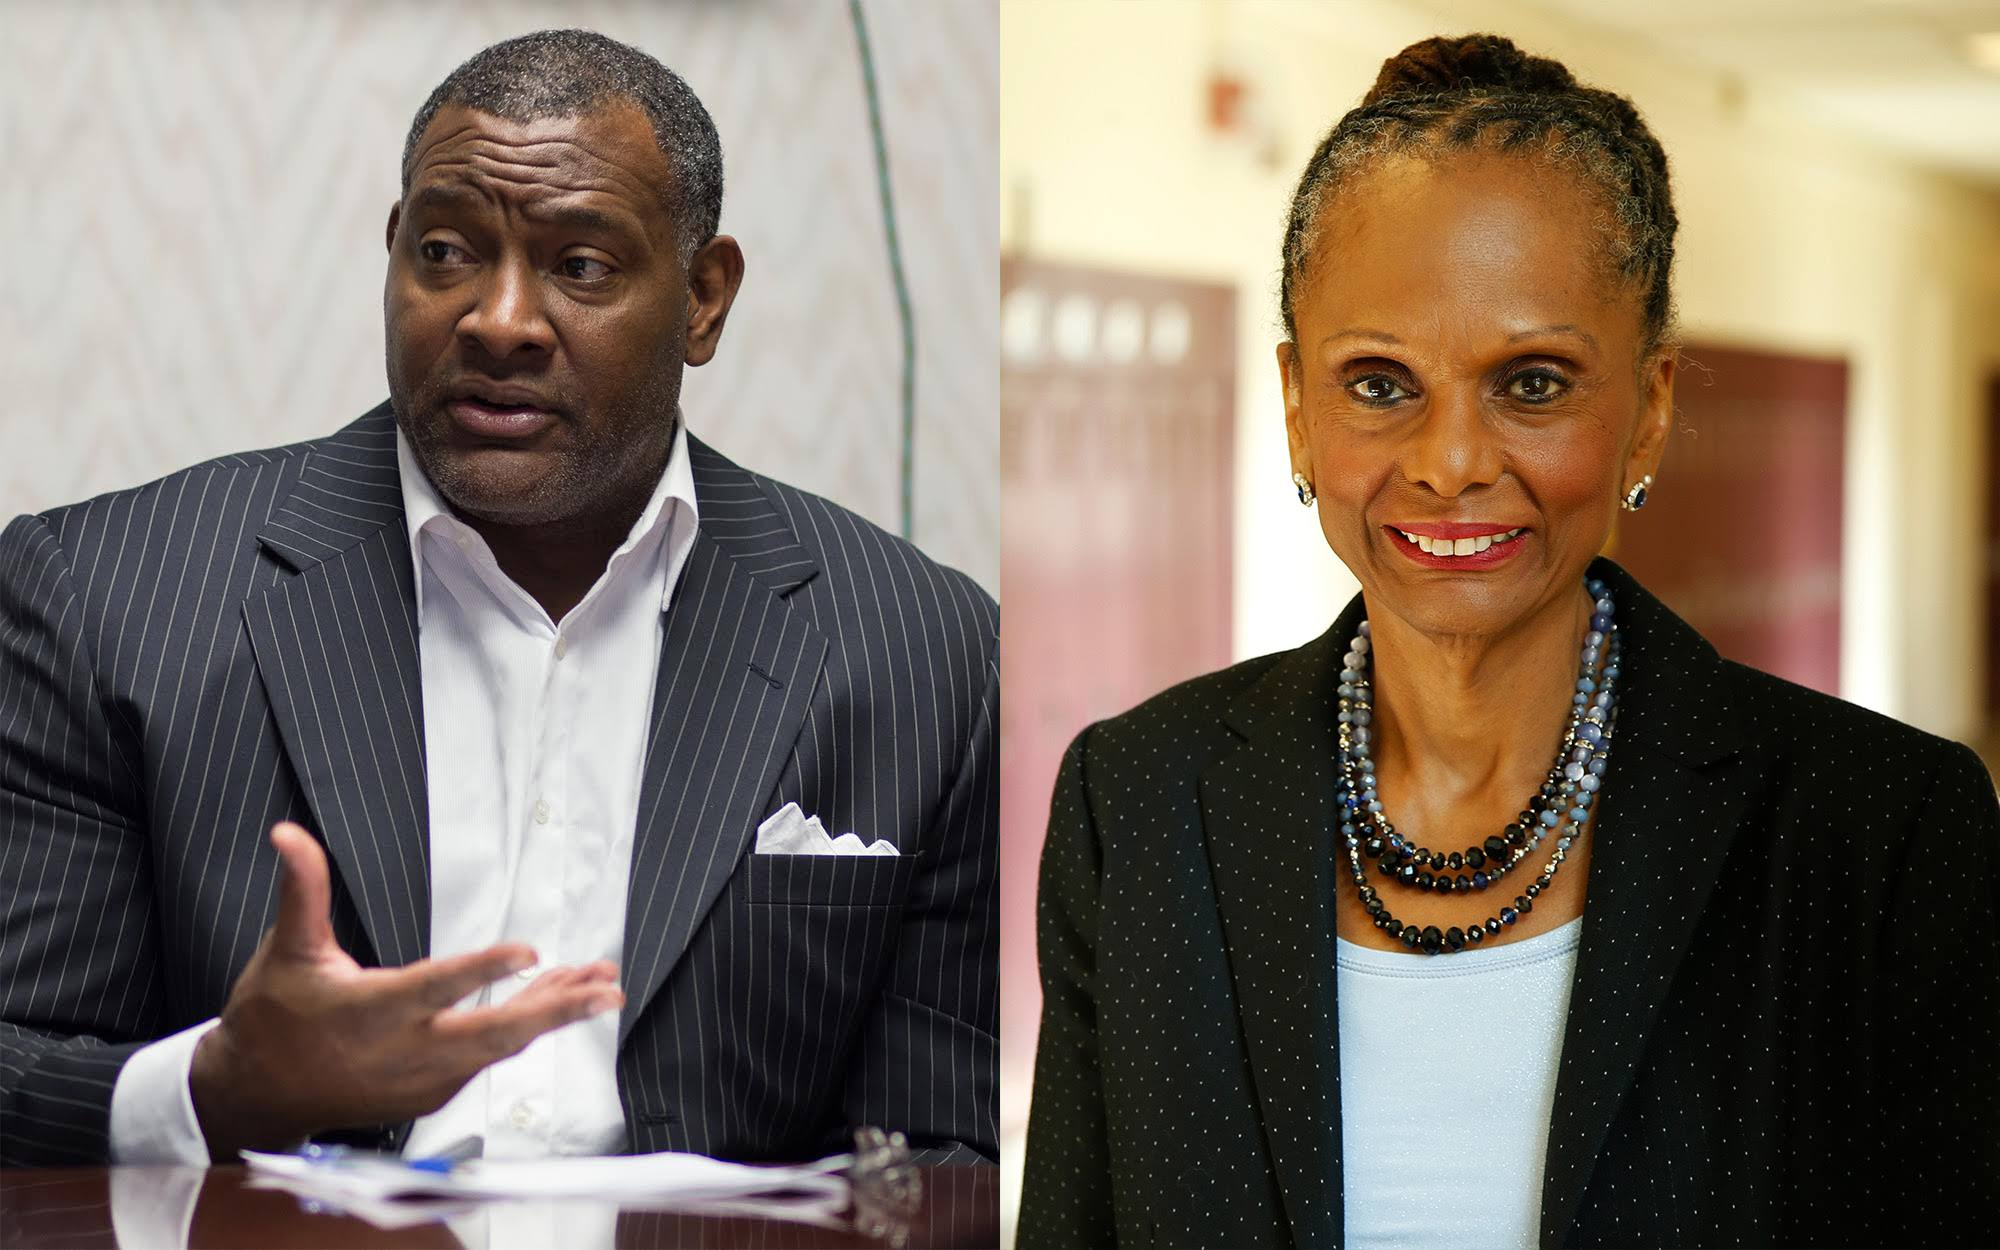 Current superintendent of Pittsburgh Public Schools Anthony Hamlet (left) and former superintendent Linda Lane (right).